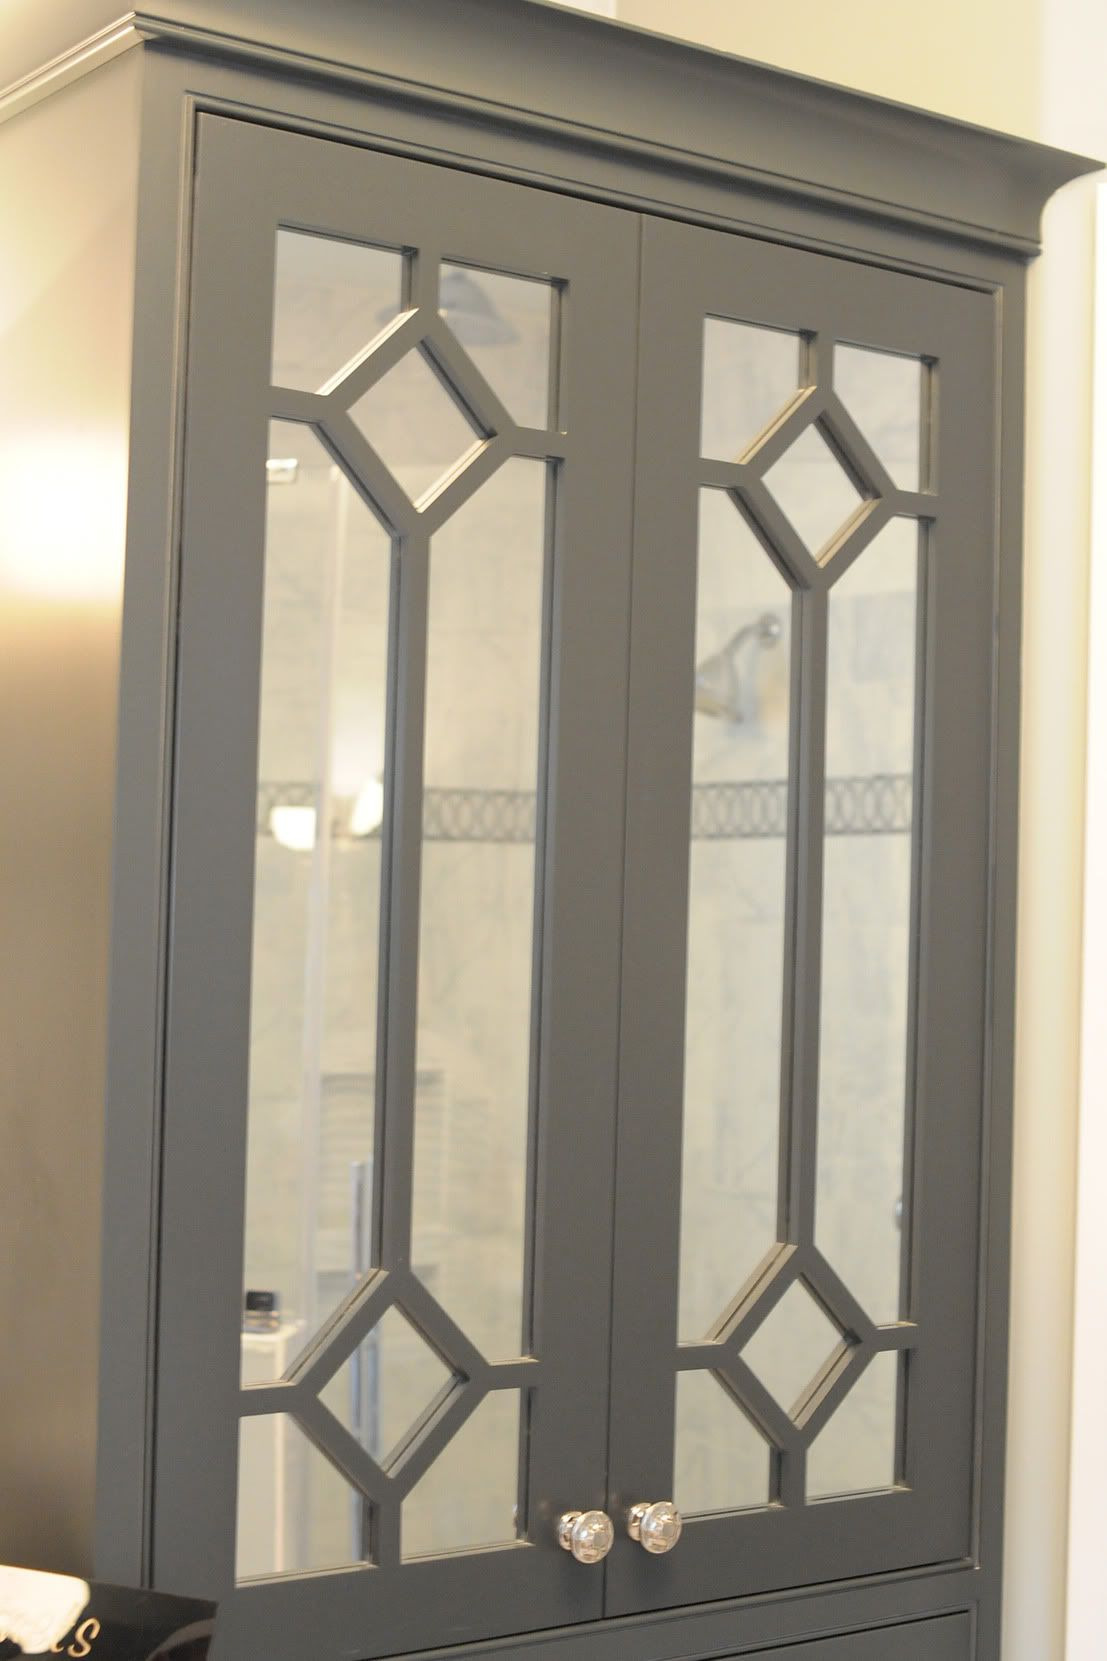 Mirrored Cabinet Doors Elegant 10 Home Decorating Tips From A Home Show Laser Cake